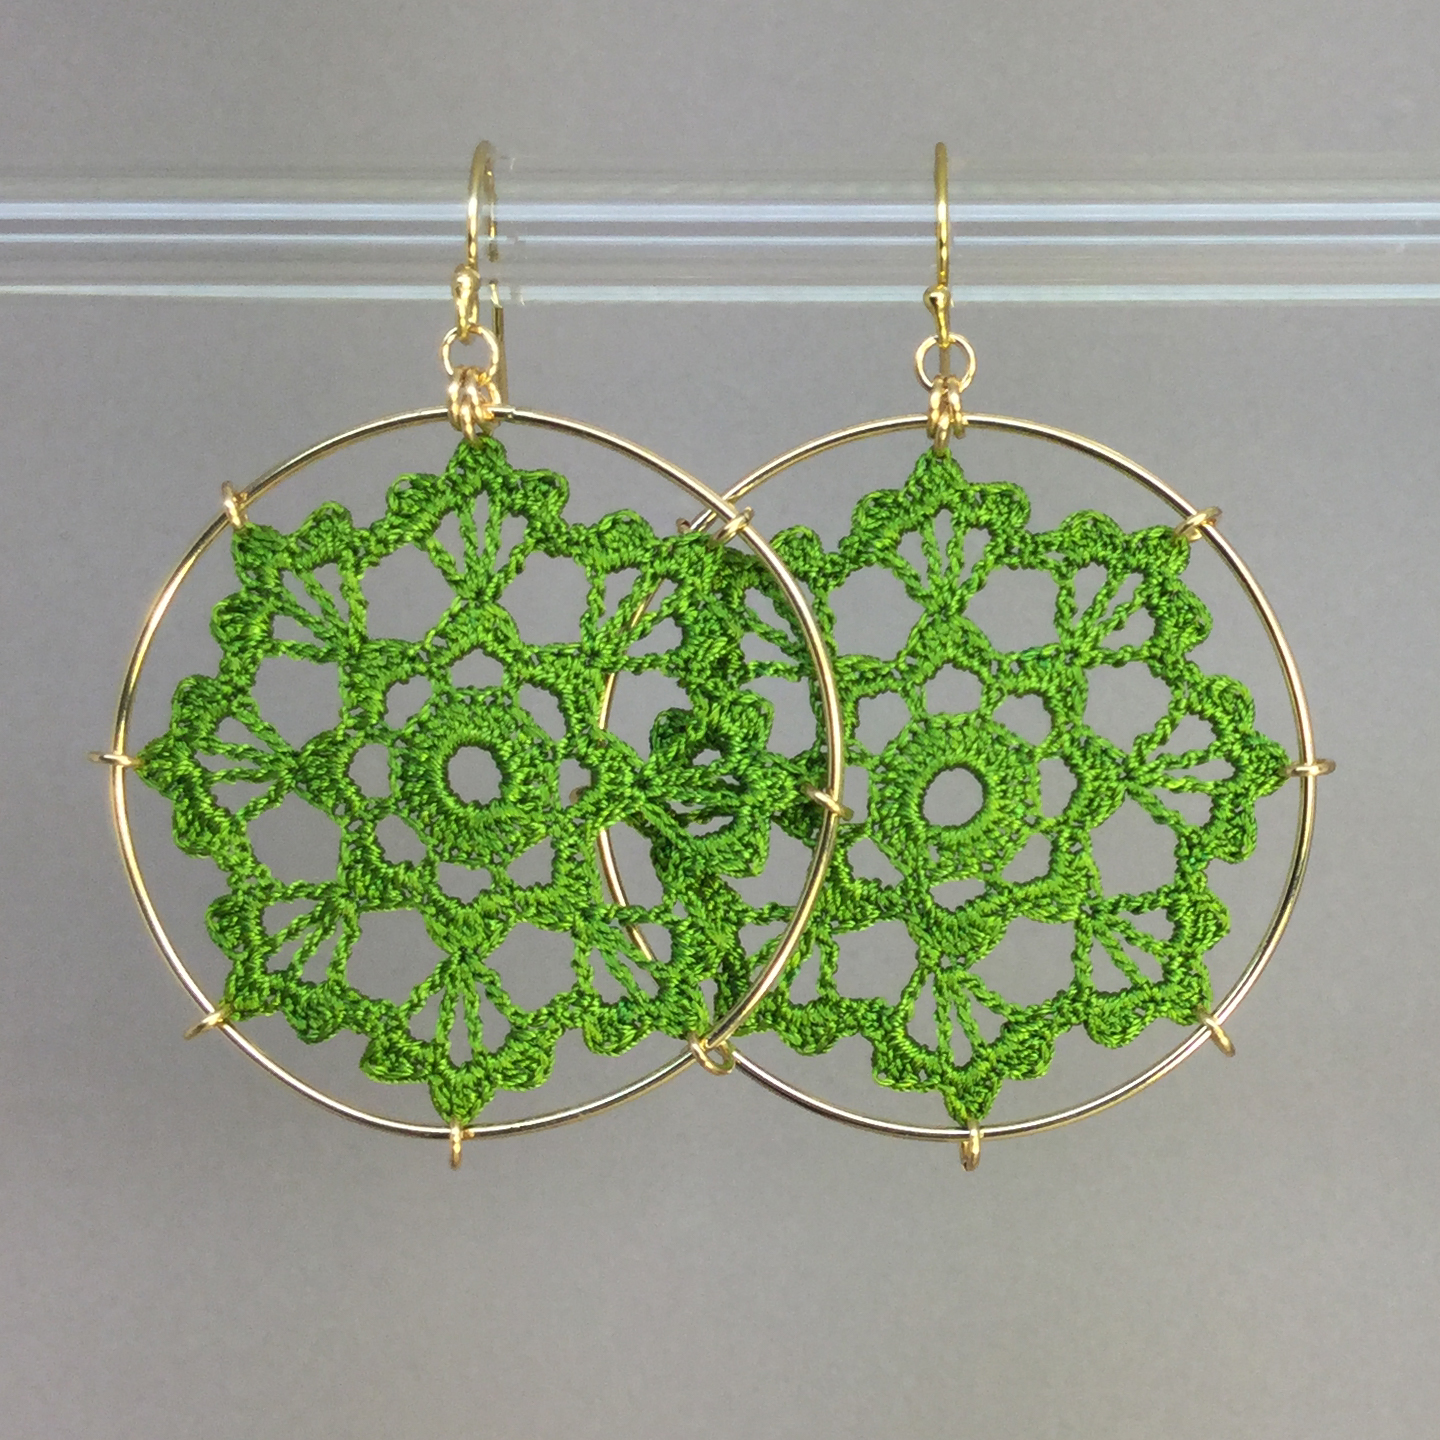 Scallops earrings, gold, parrot green thread